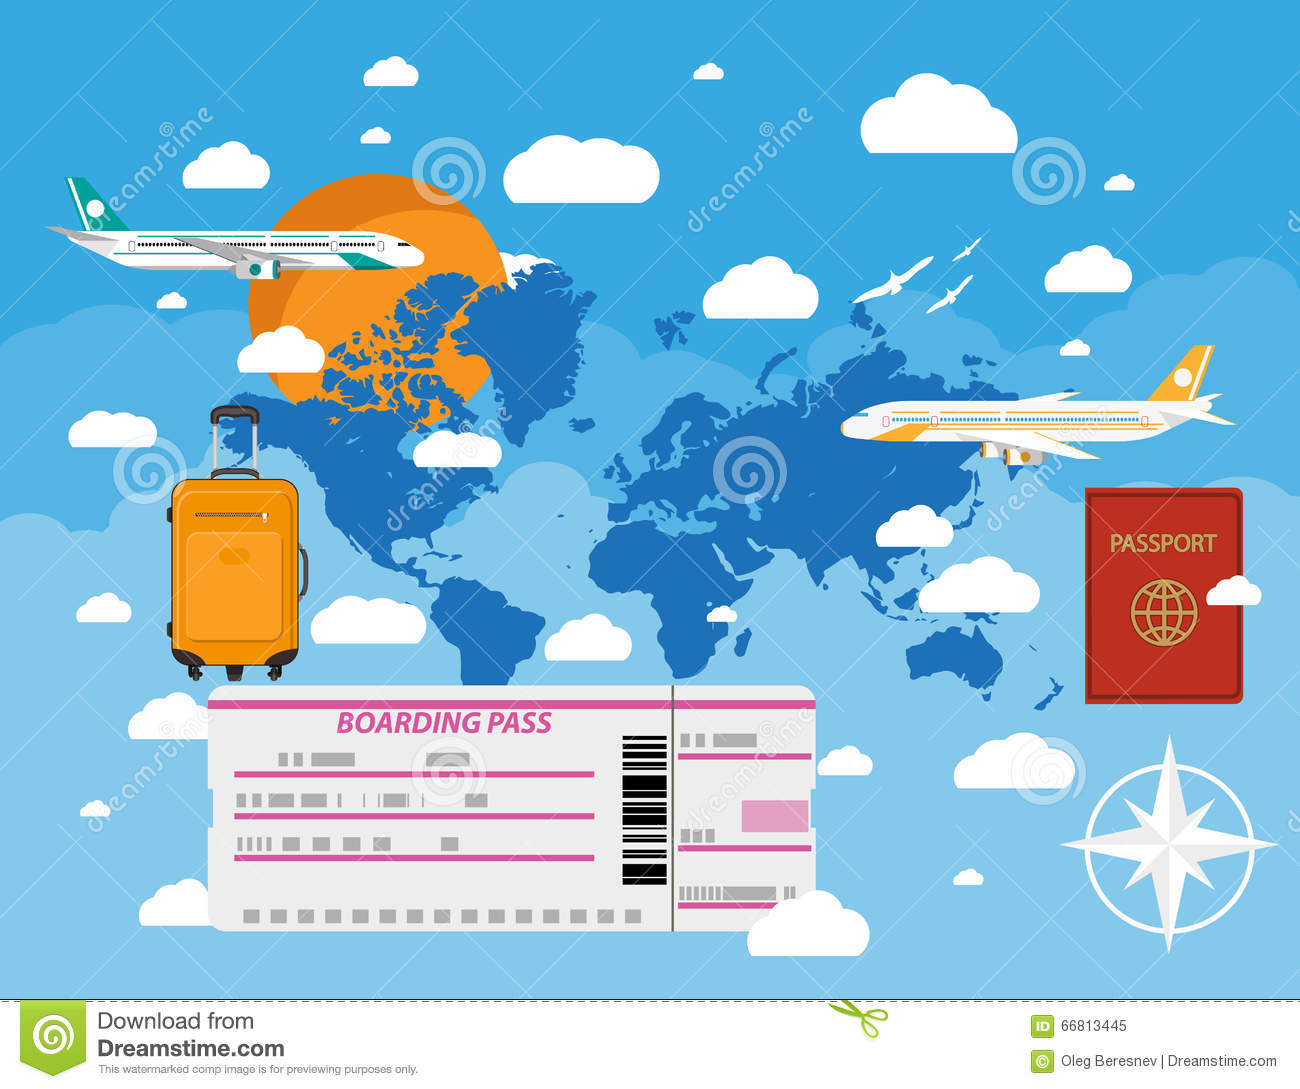 Traveling plane destination clipart jpg royalty free library Flying A Plane To Travel Destination Stock Vector - Image: 66813445 jpg royalty free library